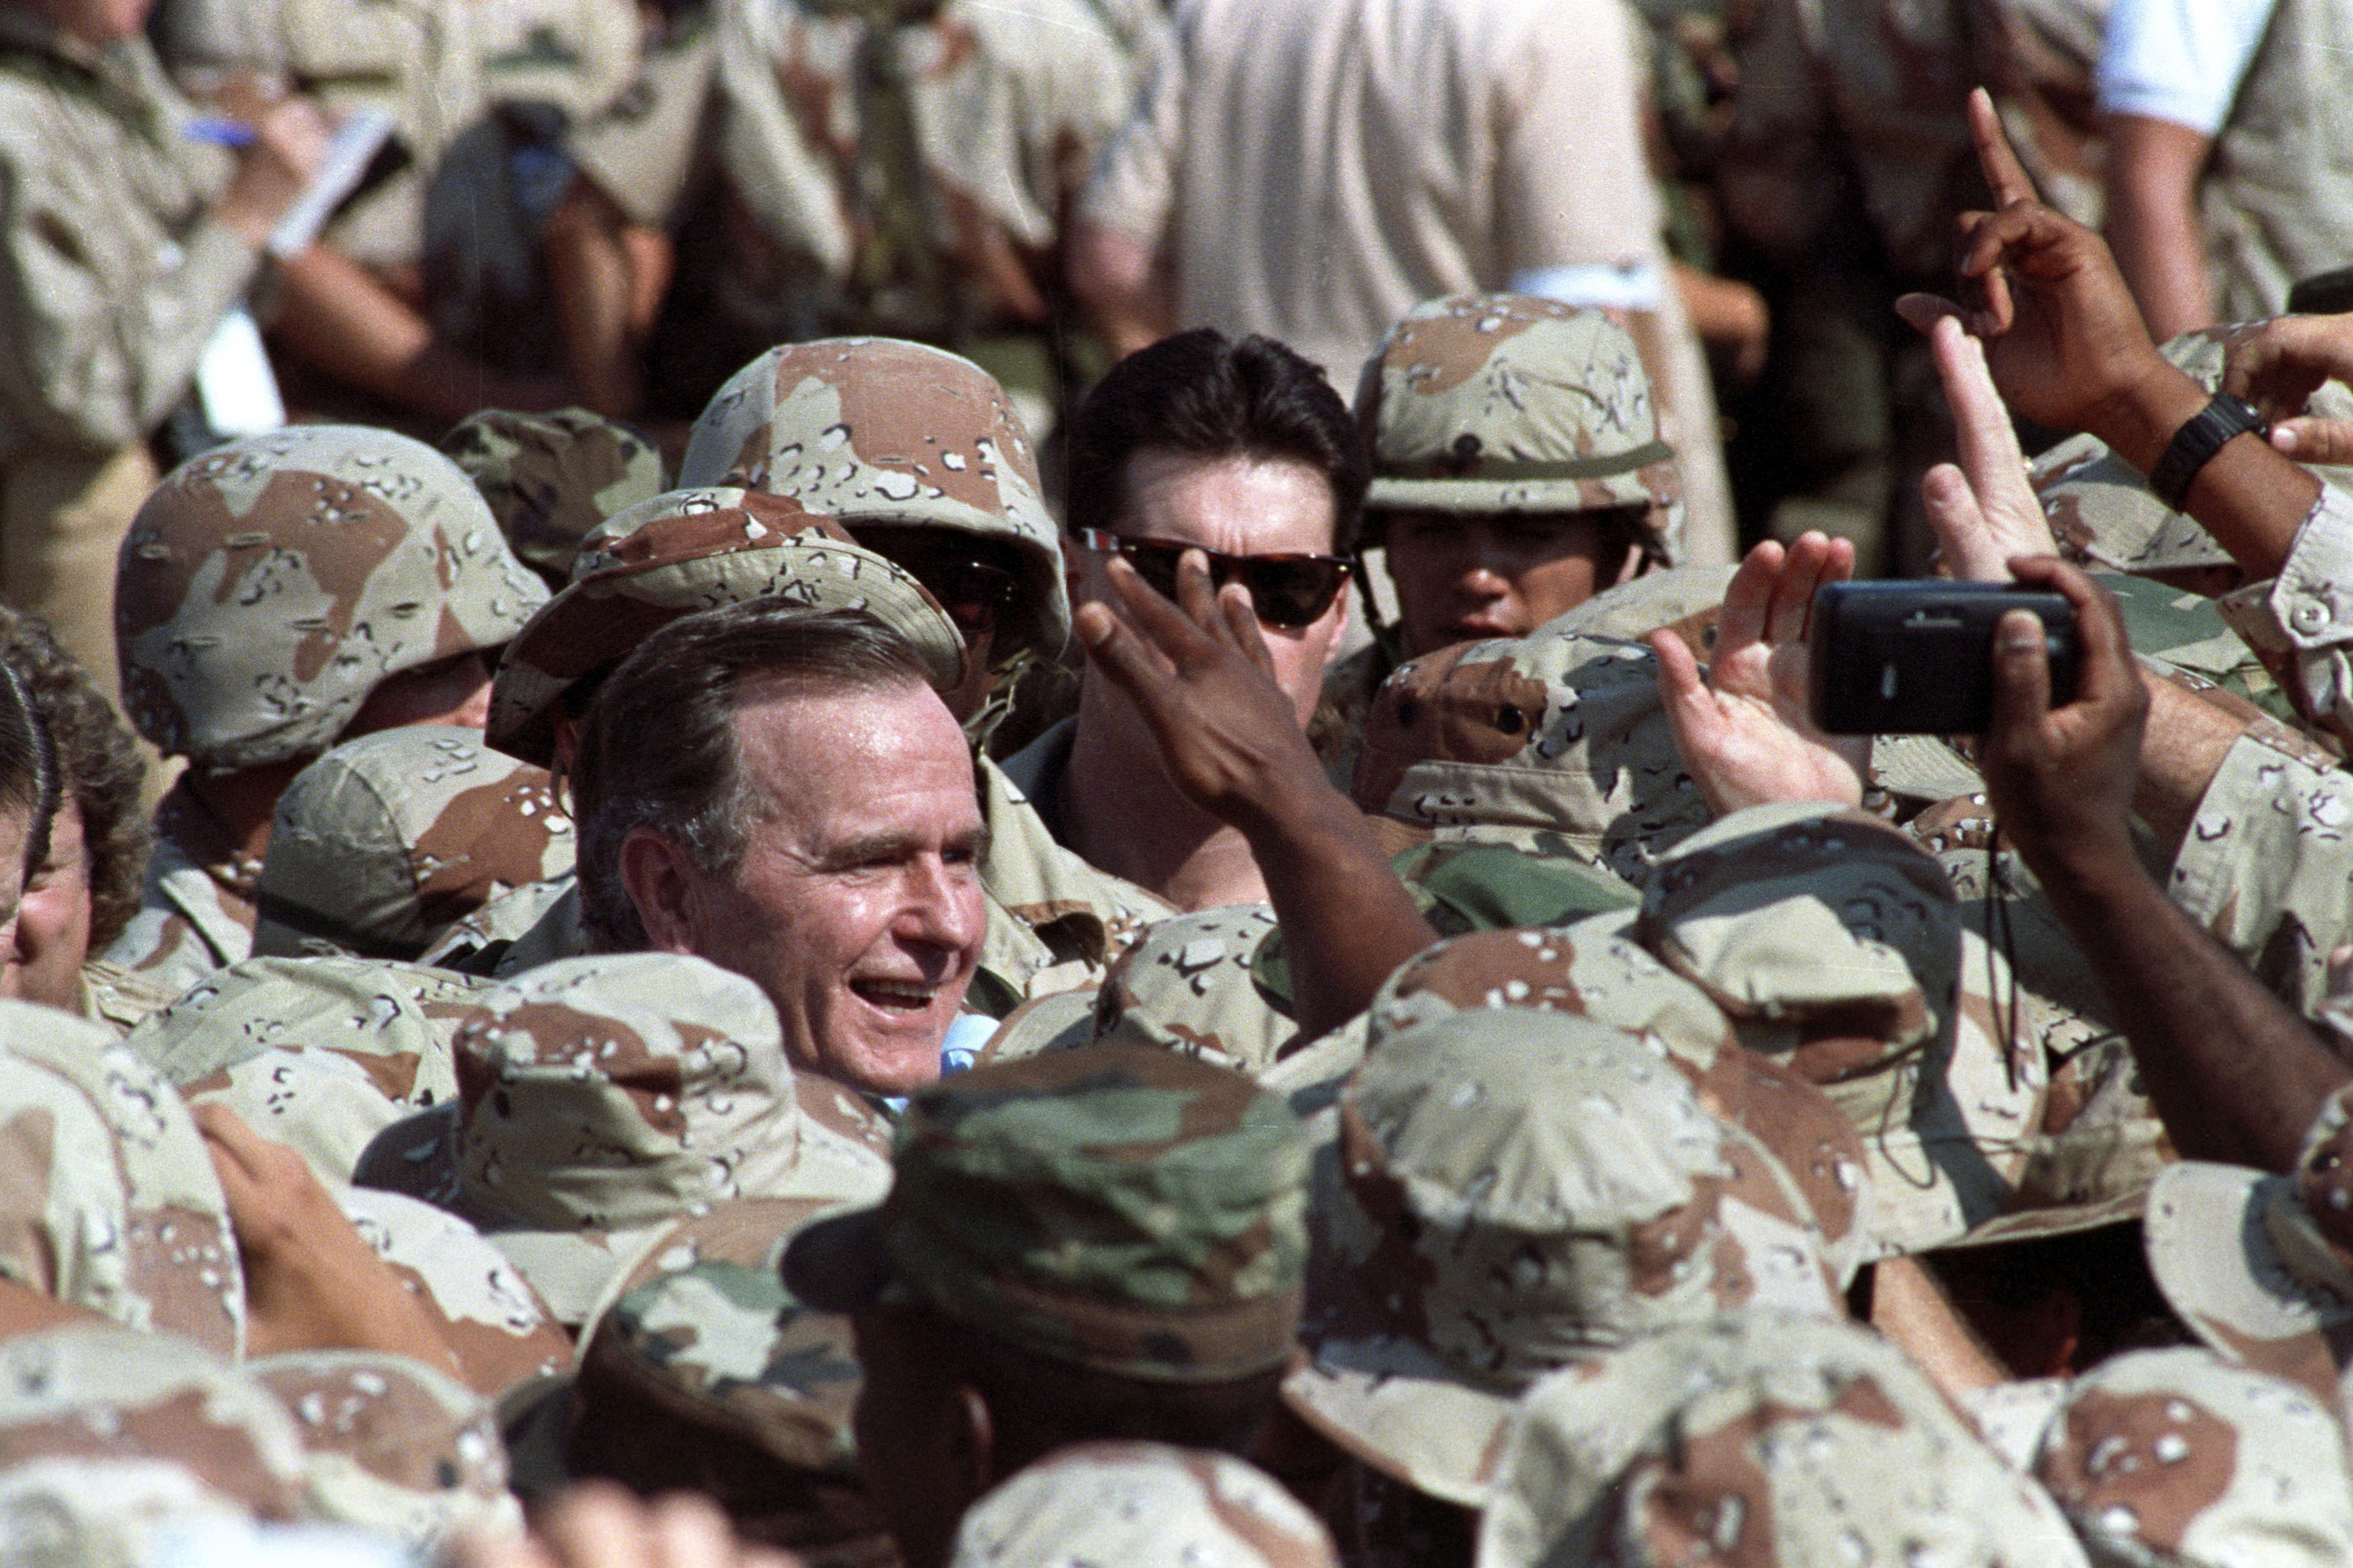 George H.W. Bush is surrounded saluda a militares estadounidense en Arabia Saudita el 22 de noviembre 1990. (REUTERS/Terry Bochatey)